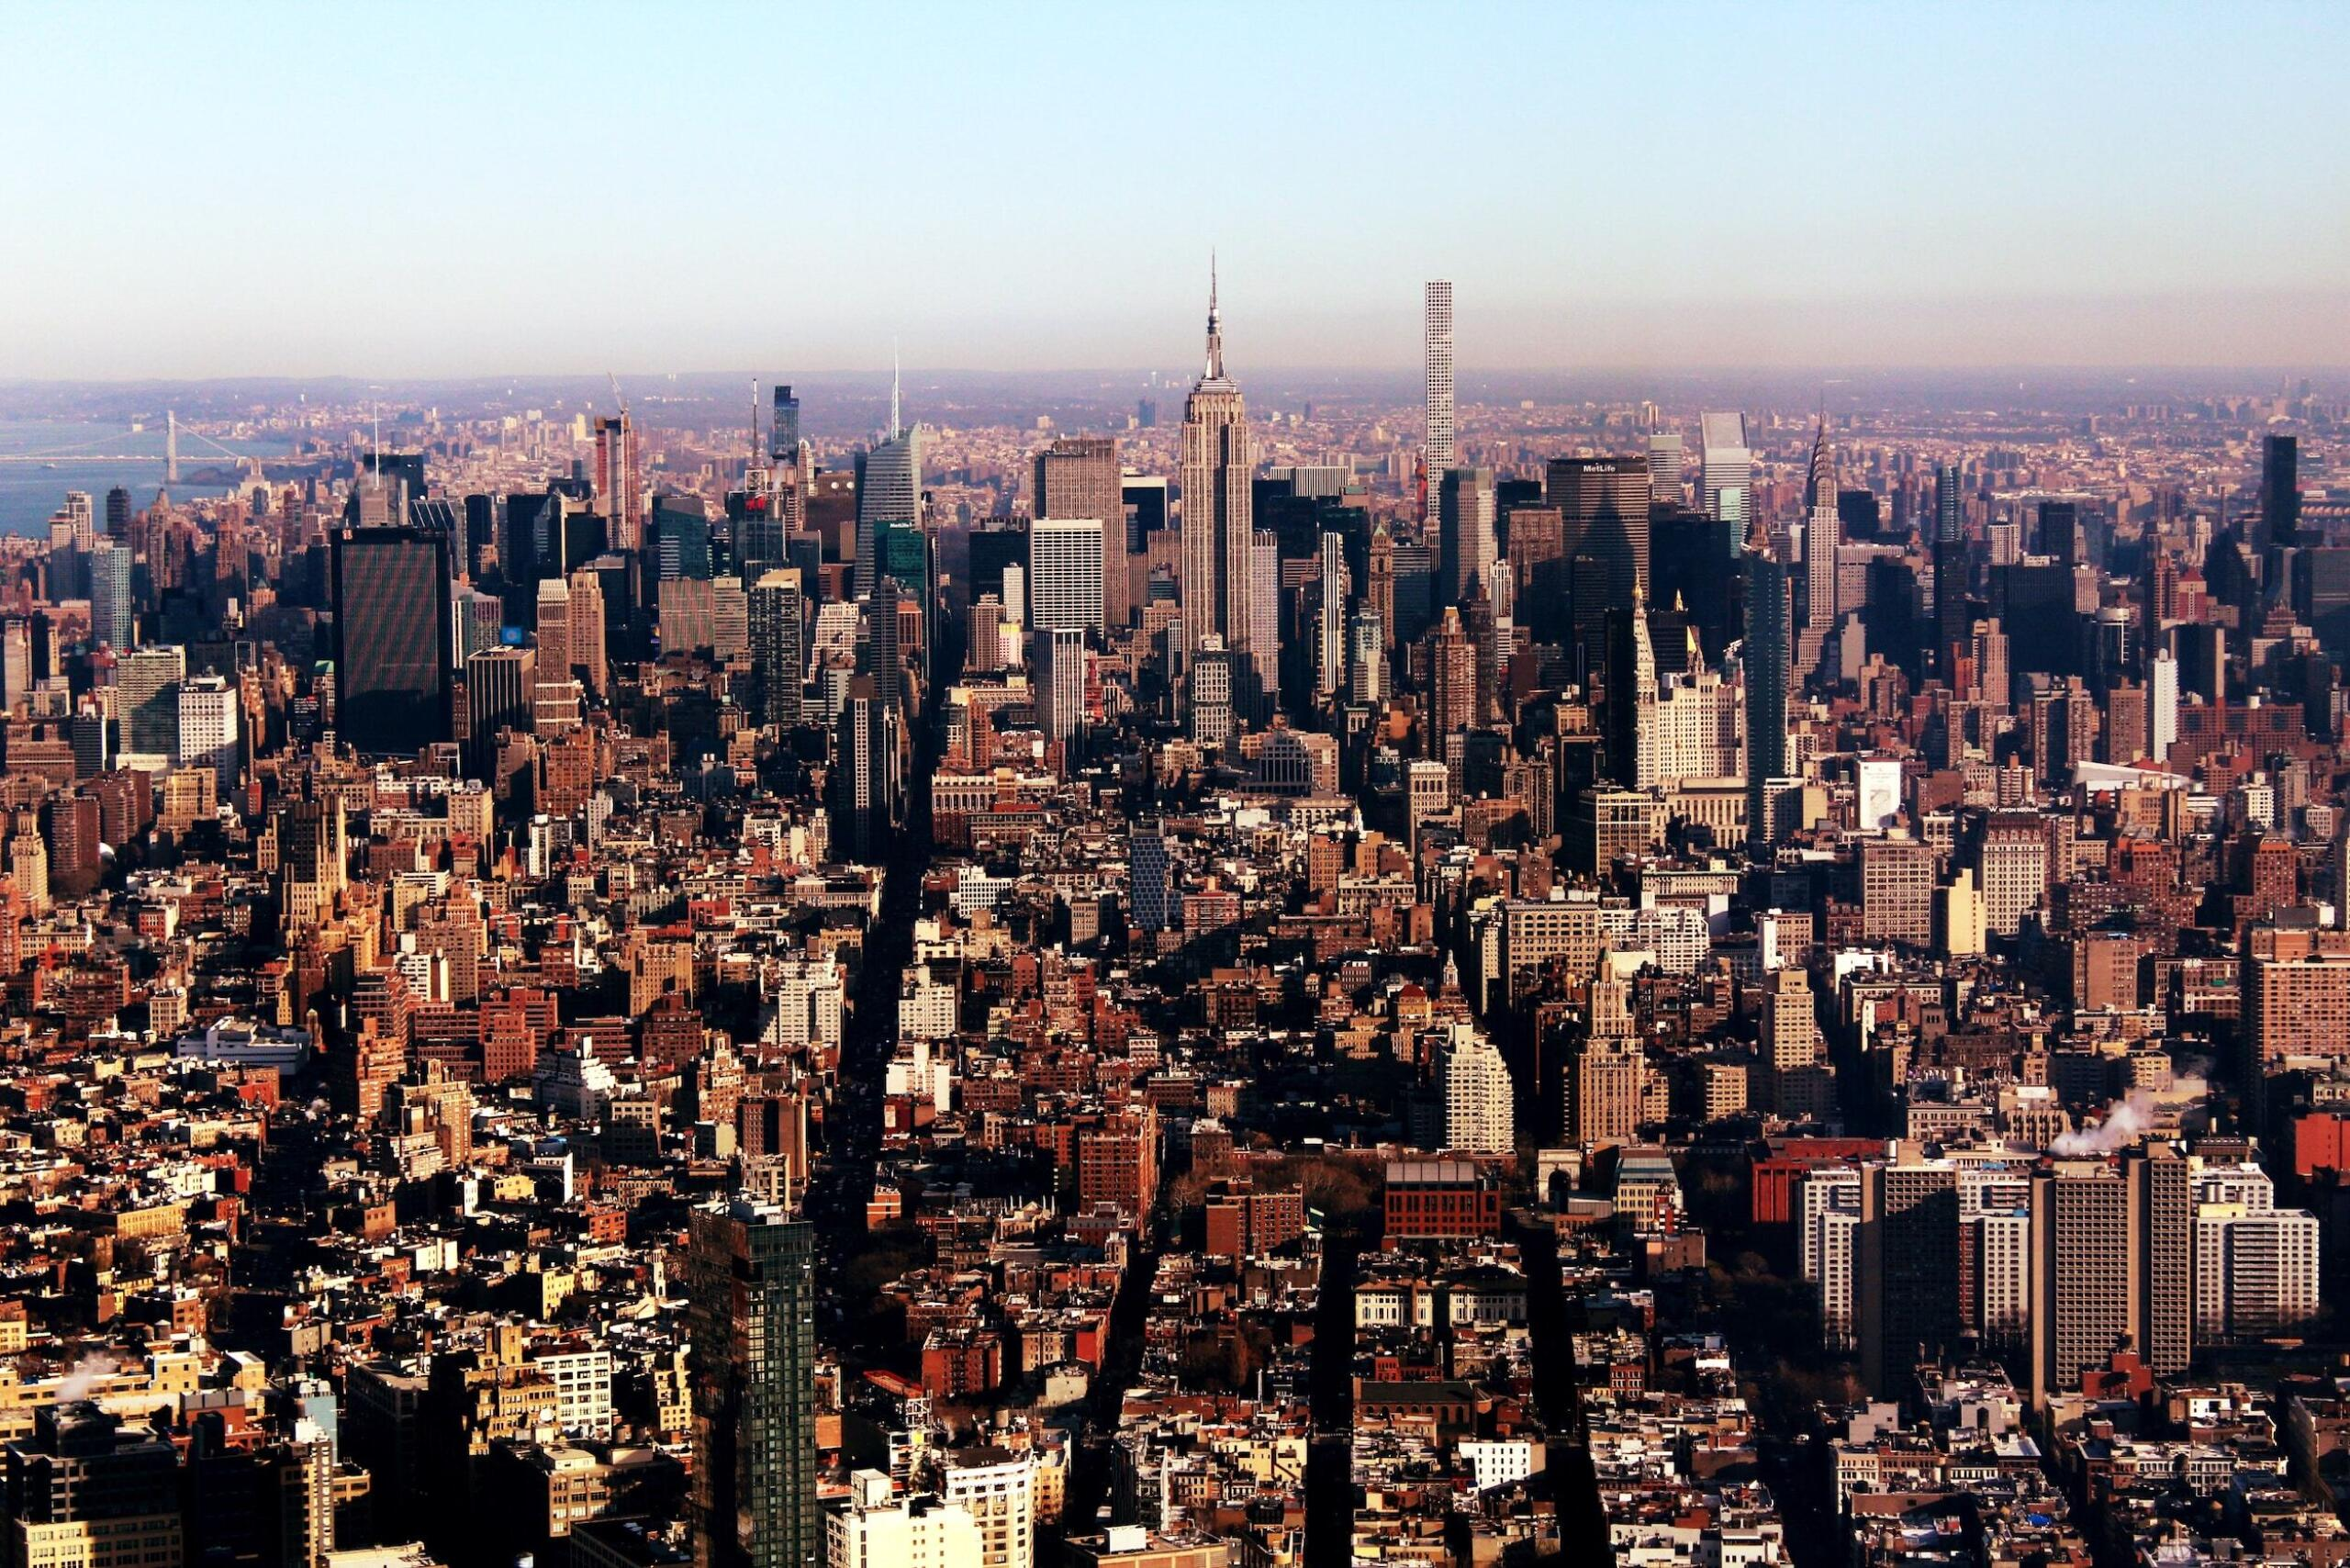 Wide aerial shot of Manhattan, New York City